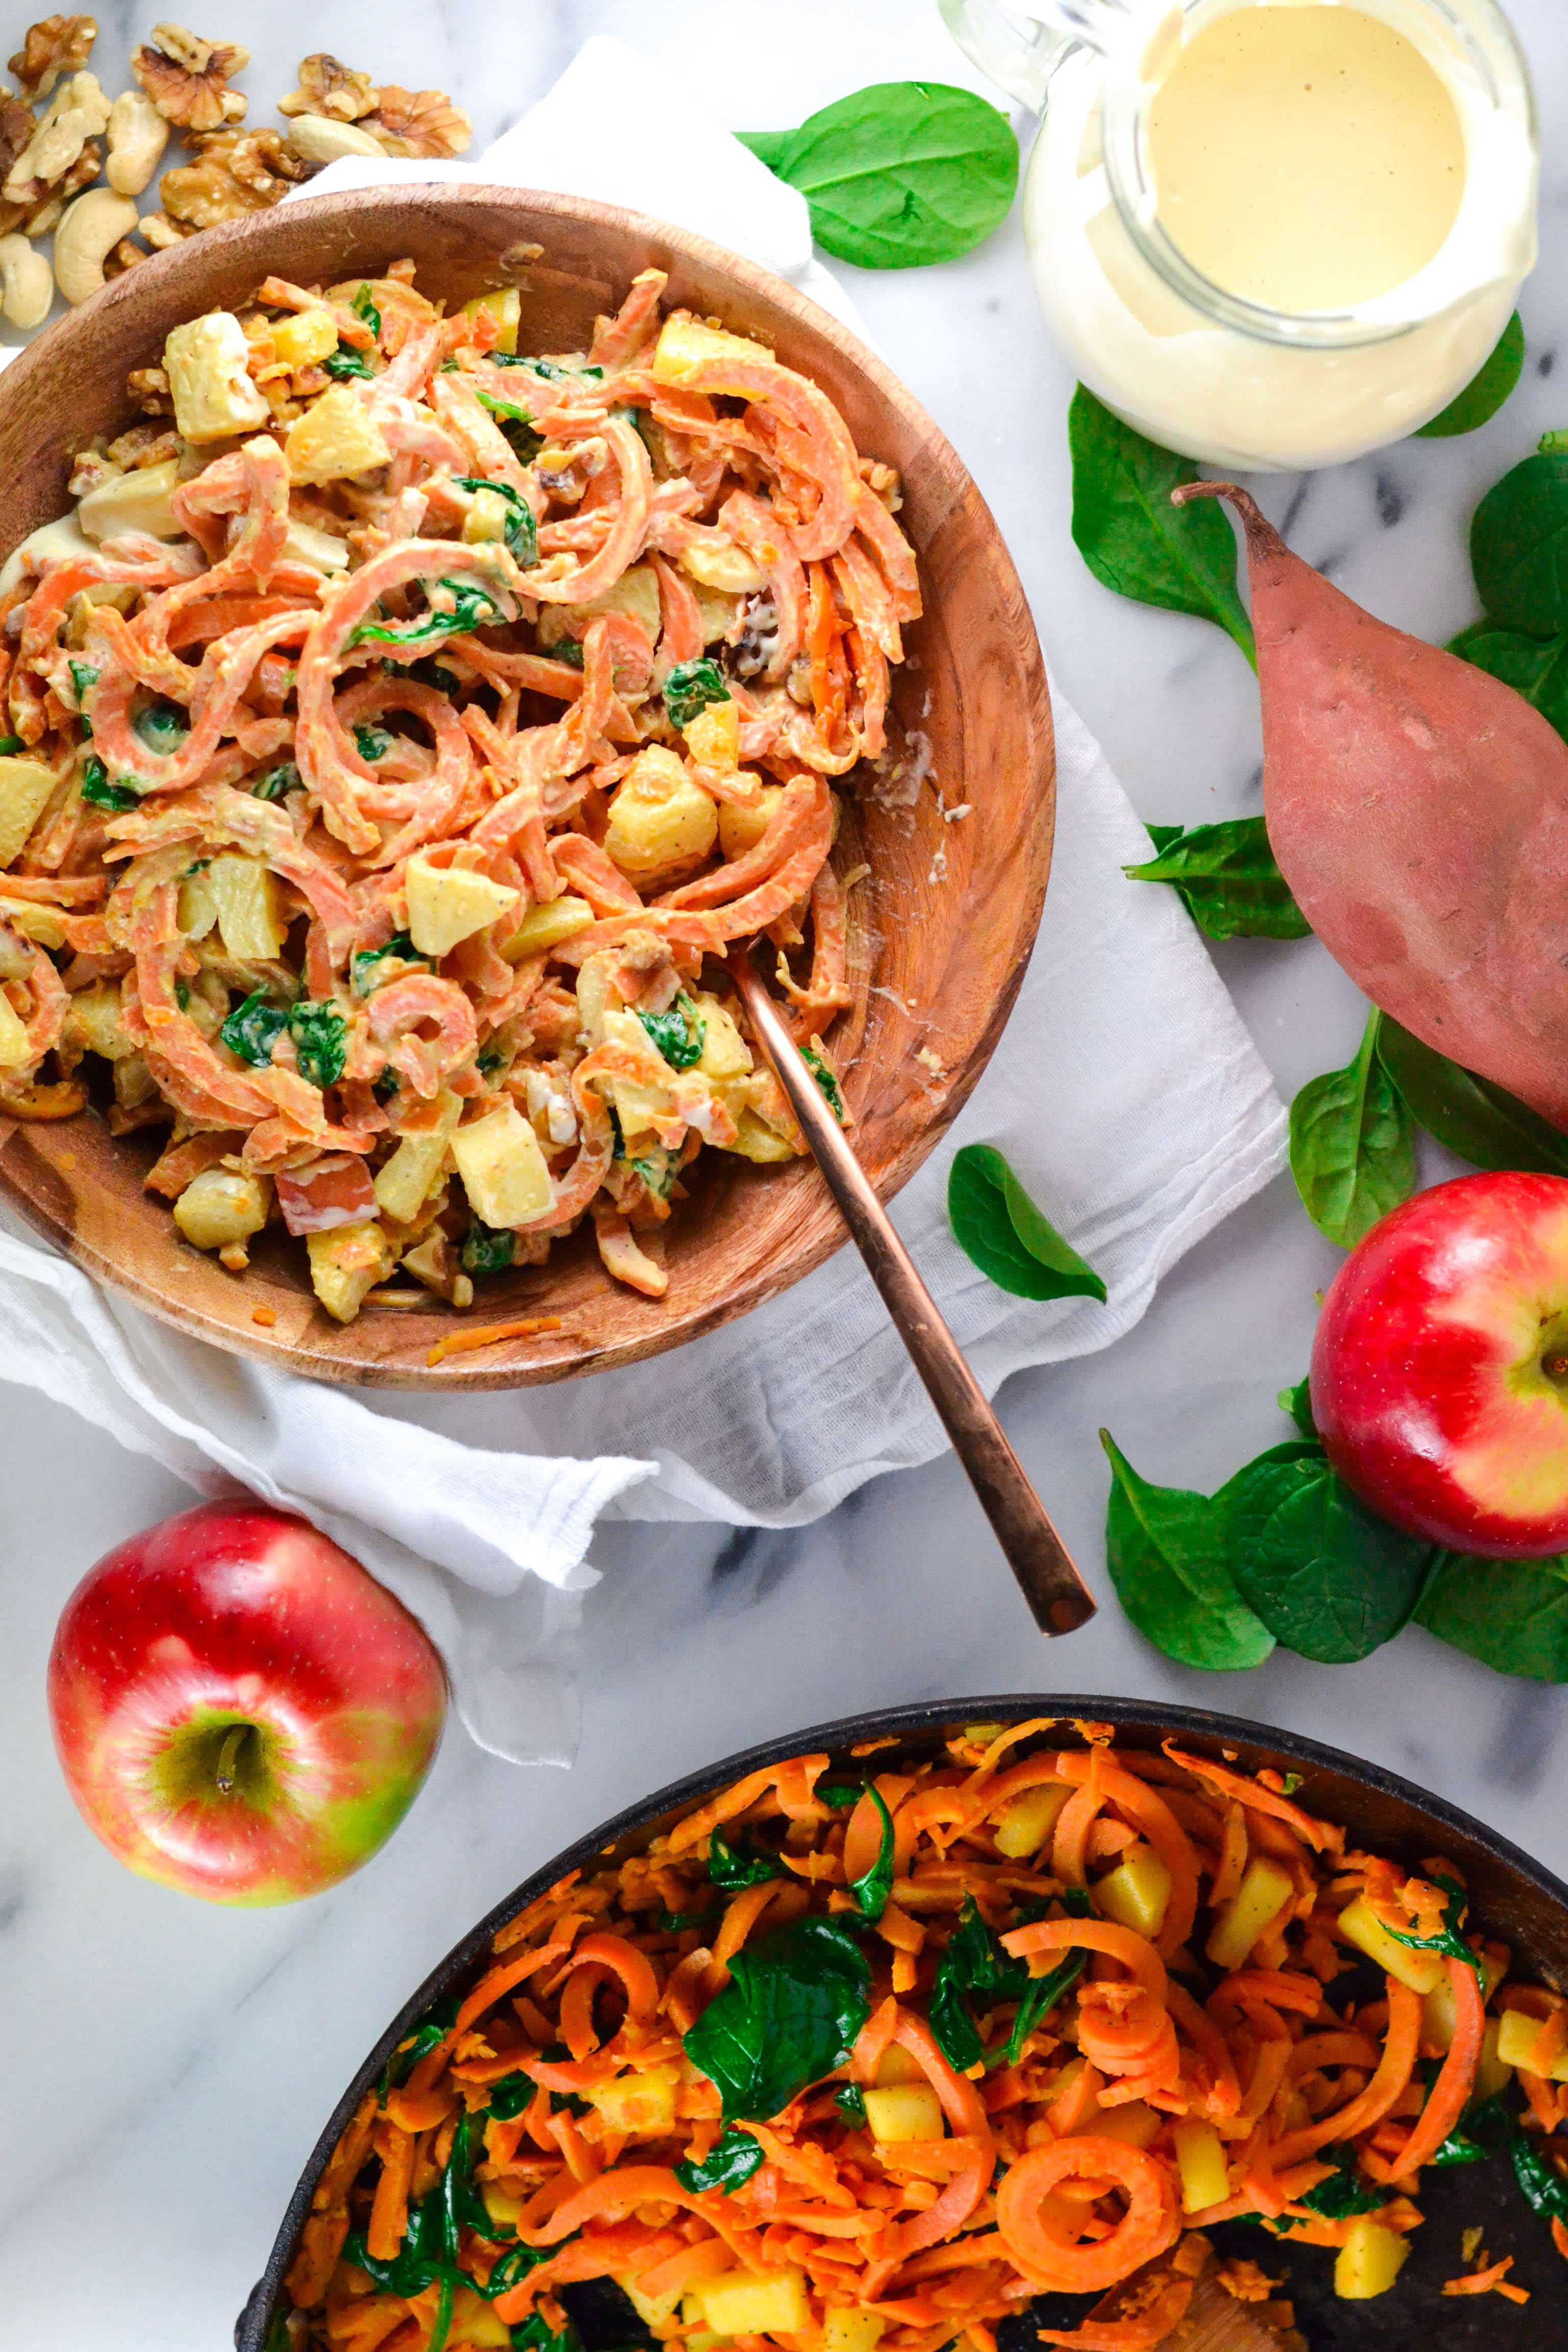 A wood bowl with Sweet Potato Noodles and apples  in a Creamy Cashew Sauce with apples on the table.